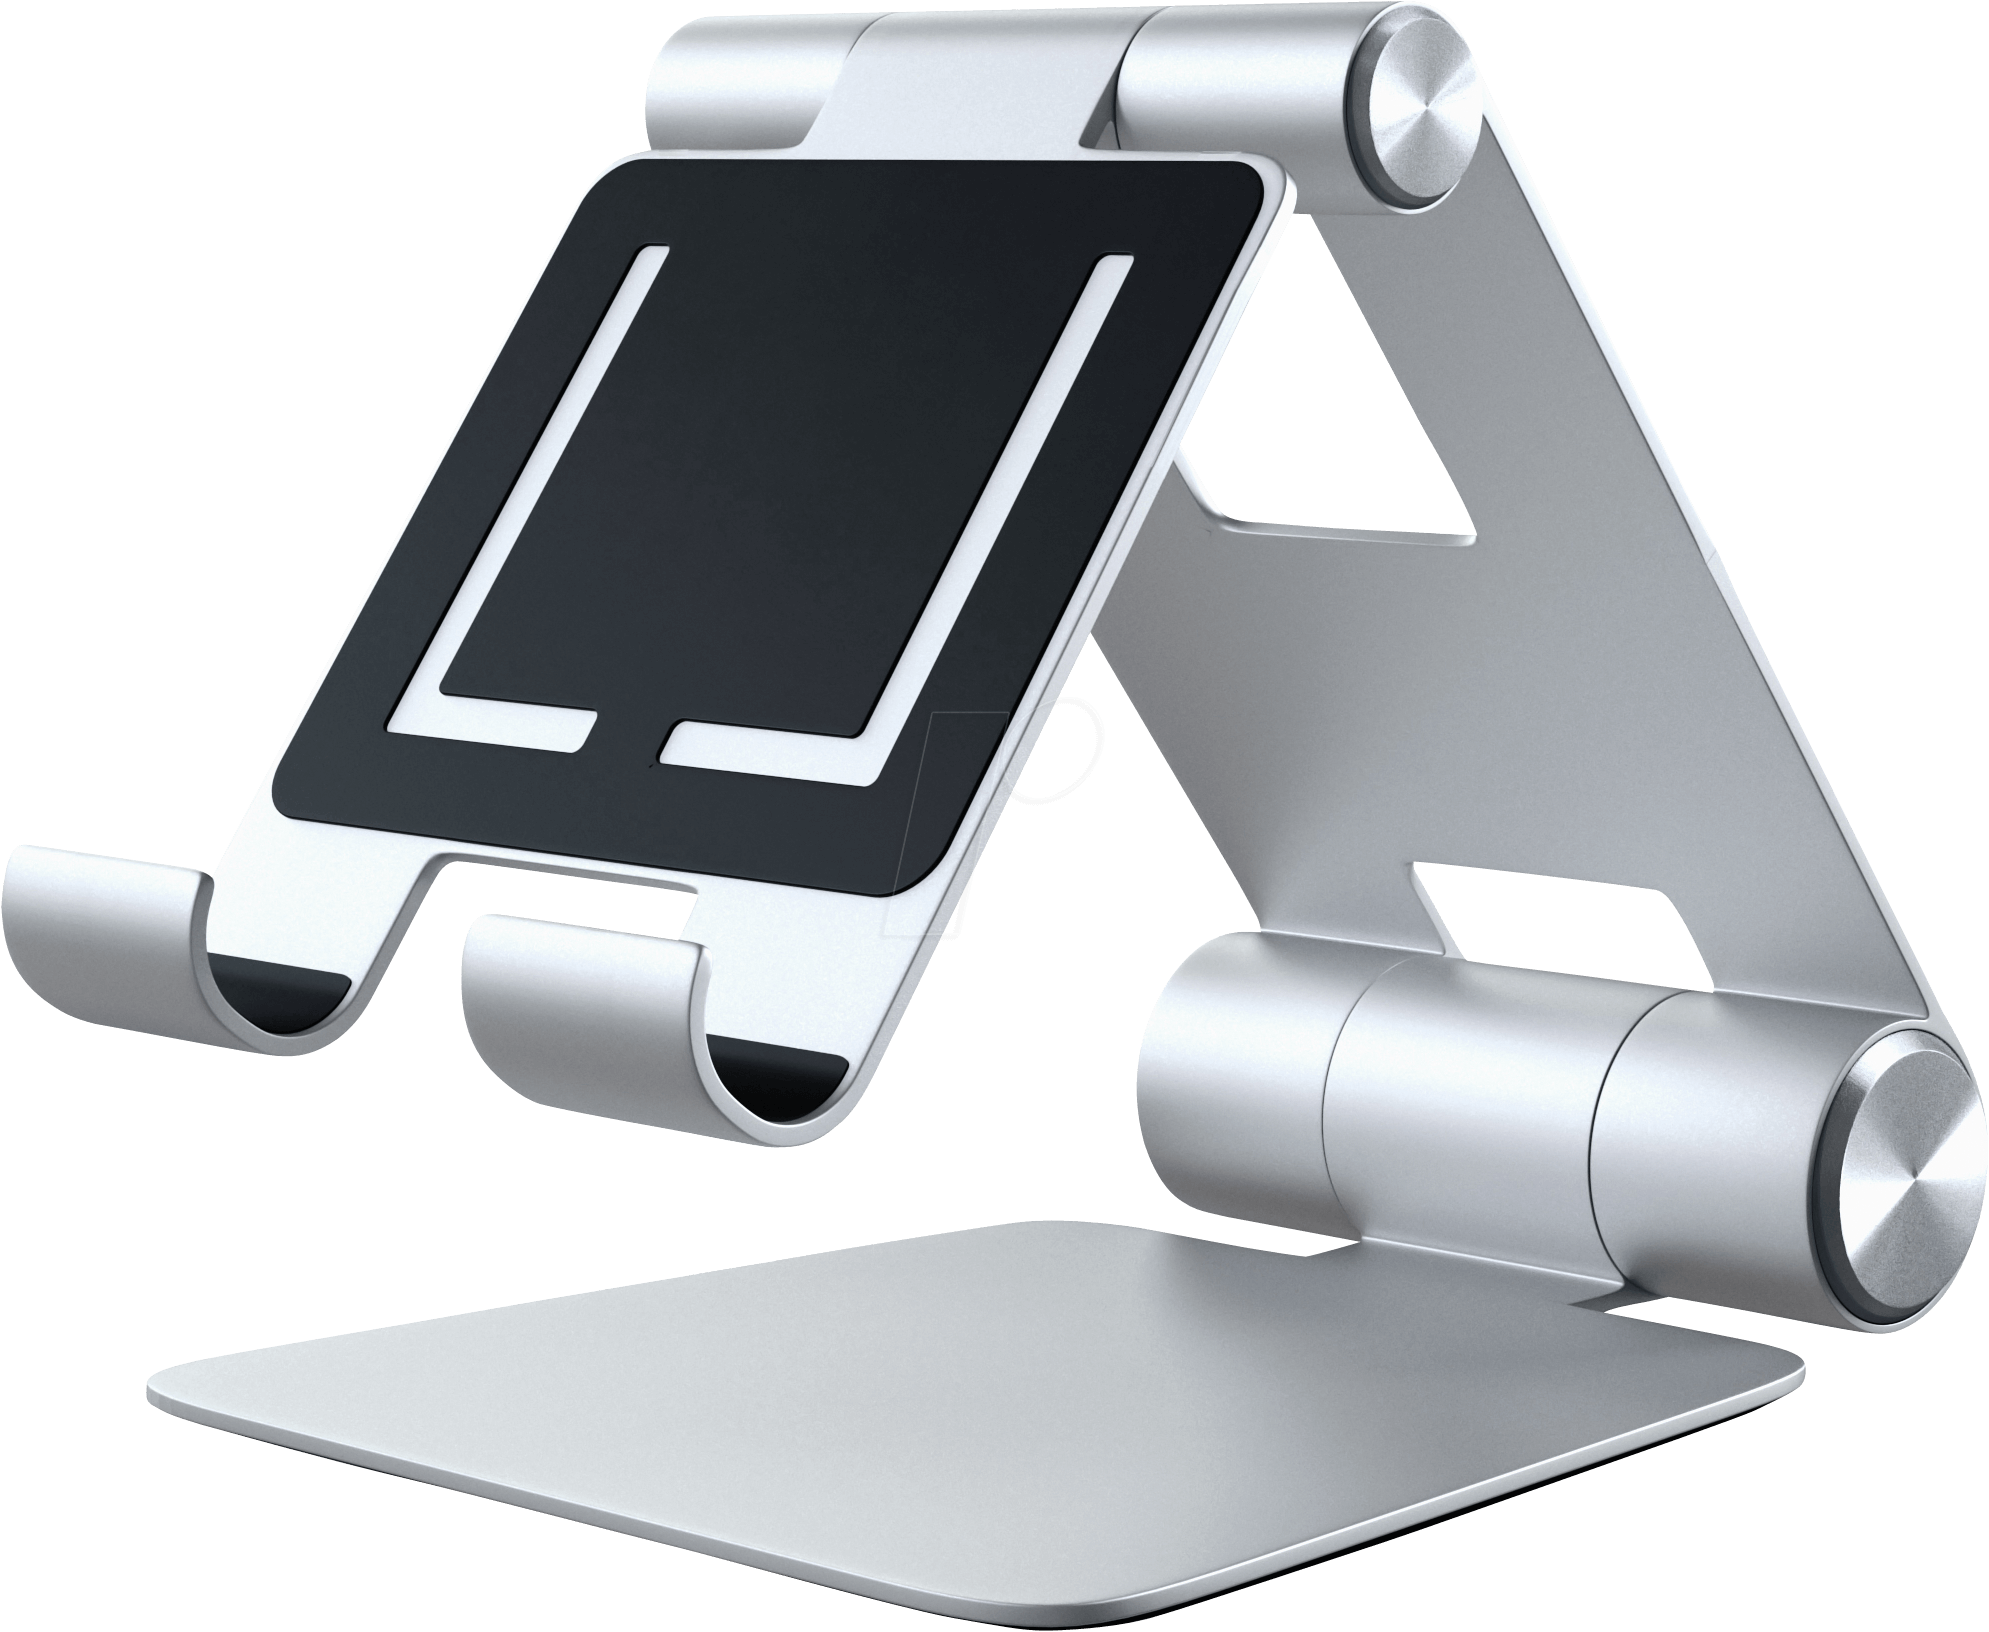 Satechi R1 Aluminum Foldable Stand silver